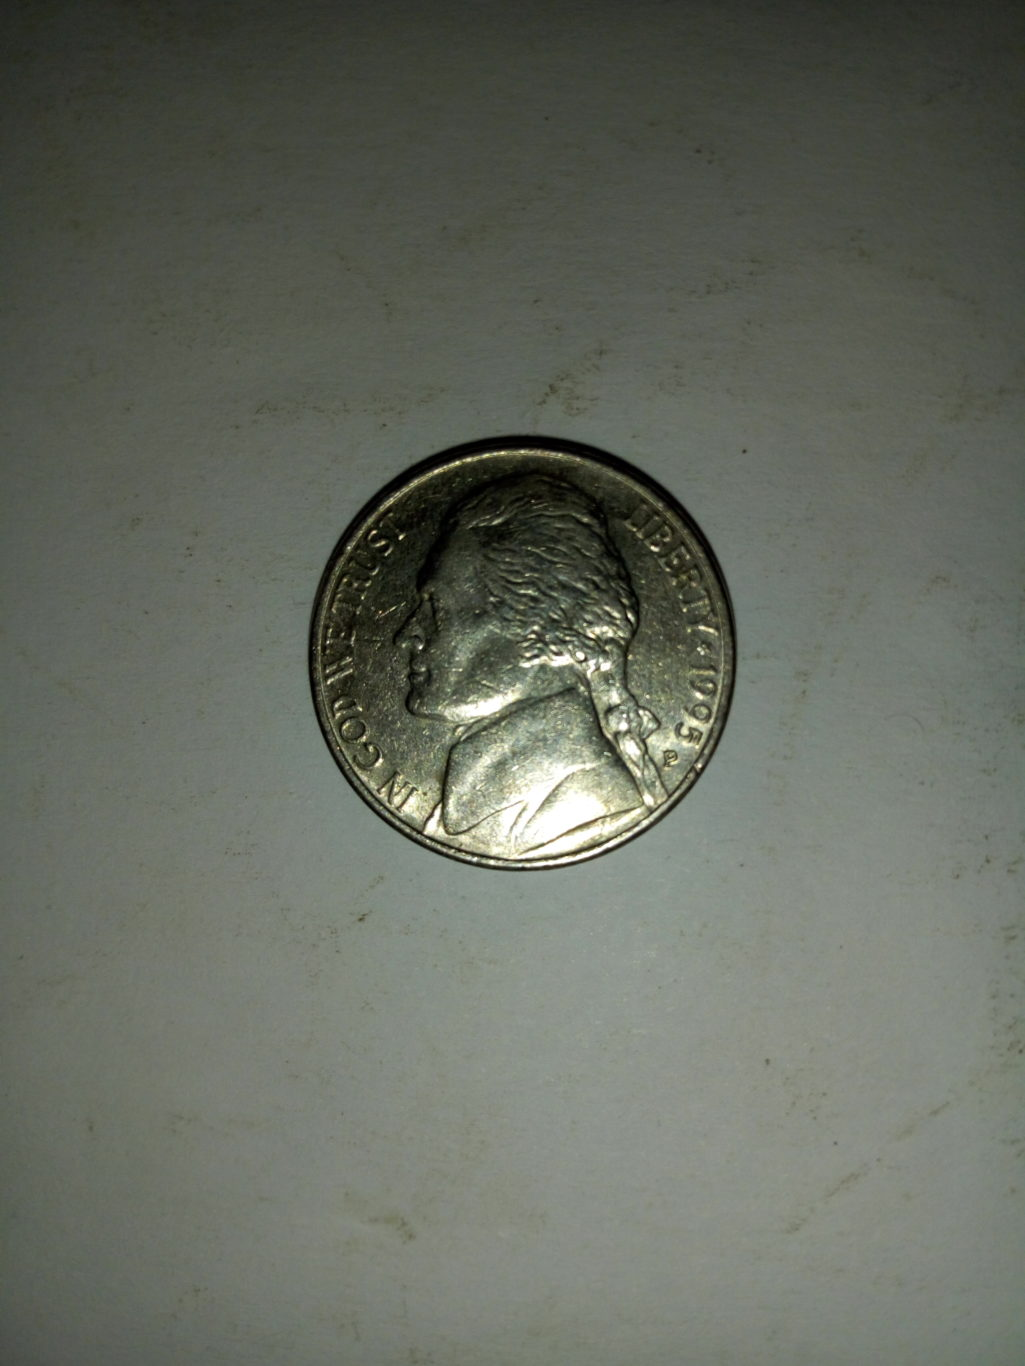 1995_united States of America 5 cents